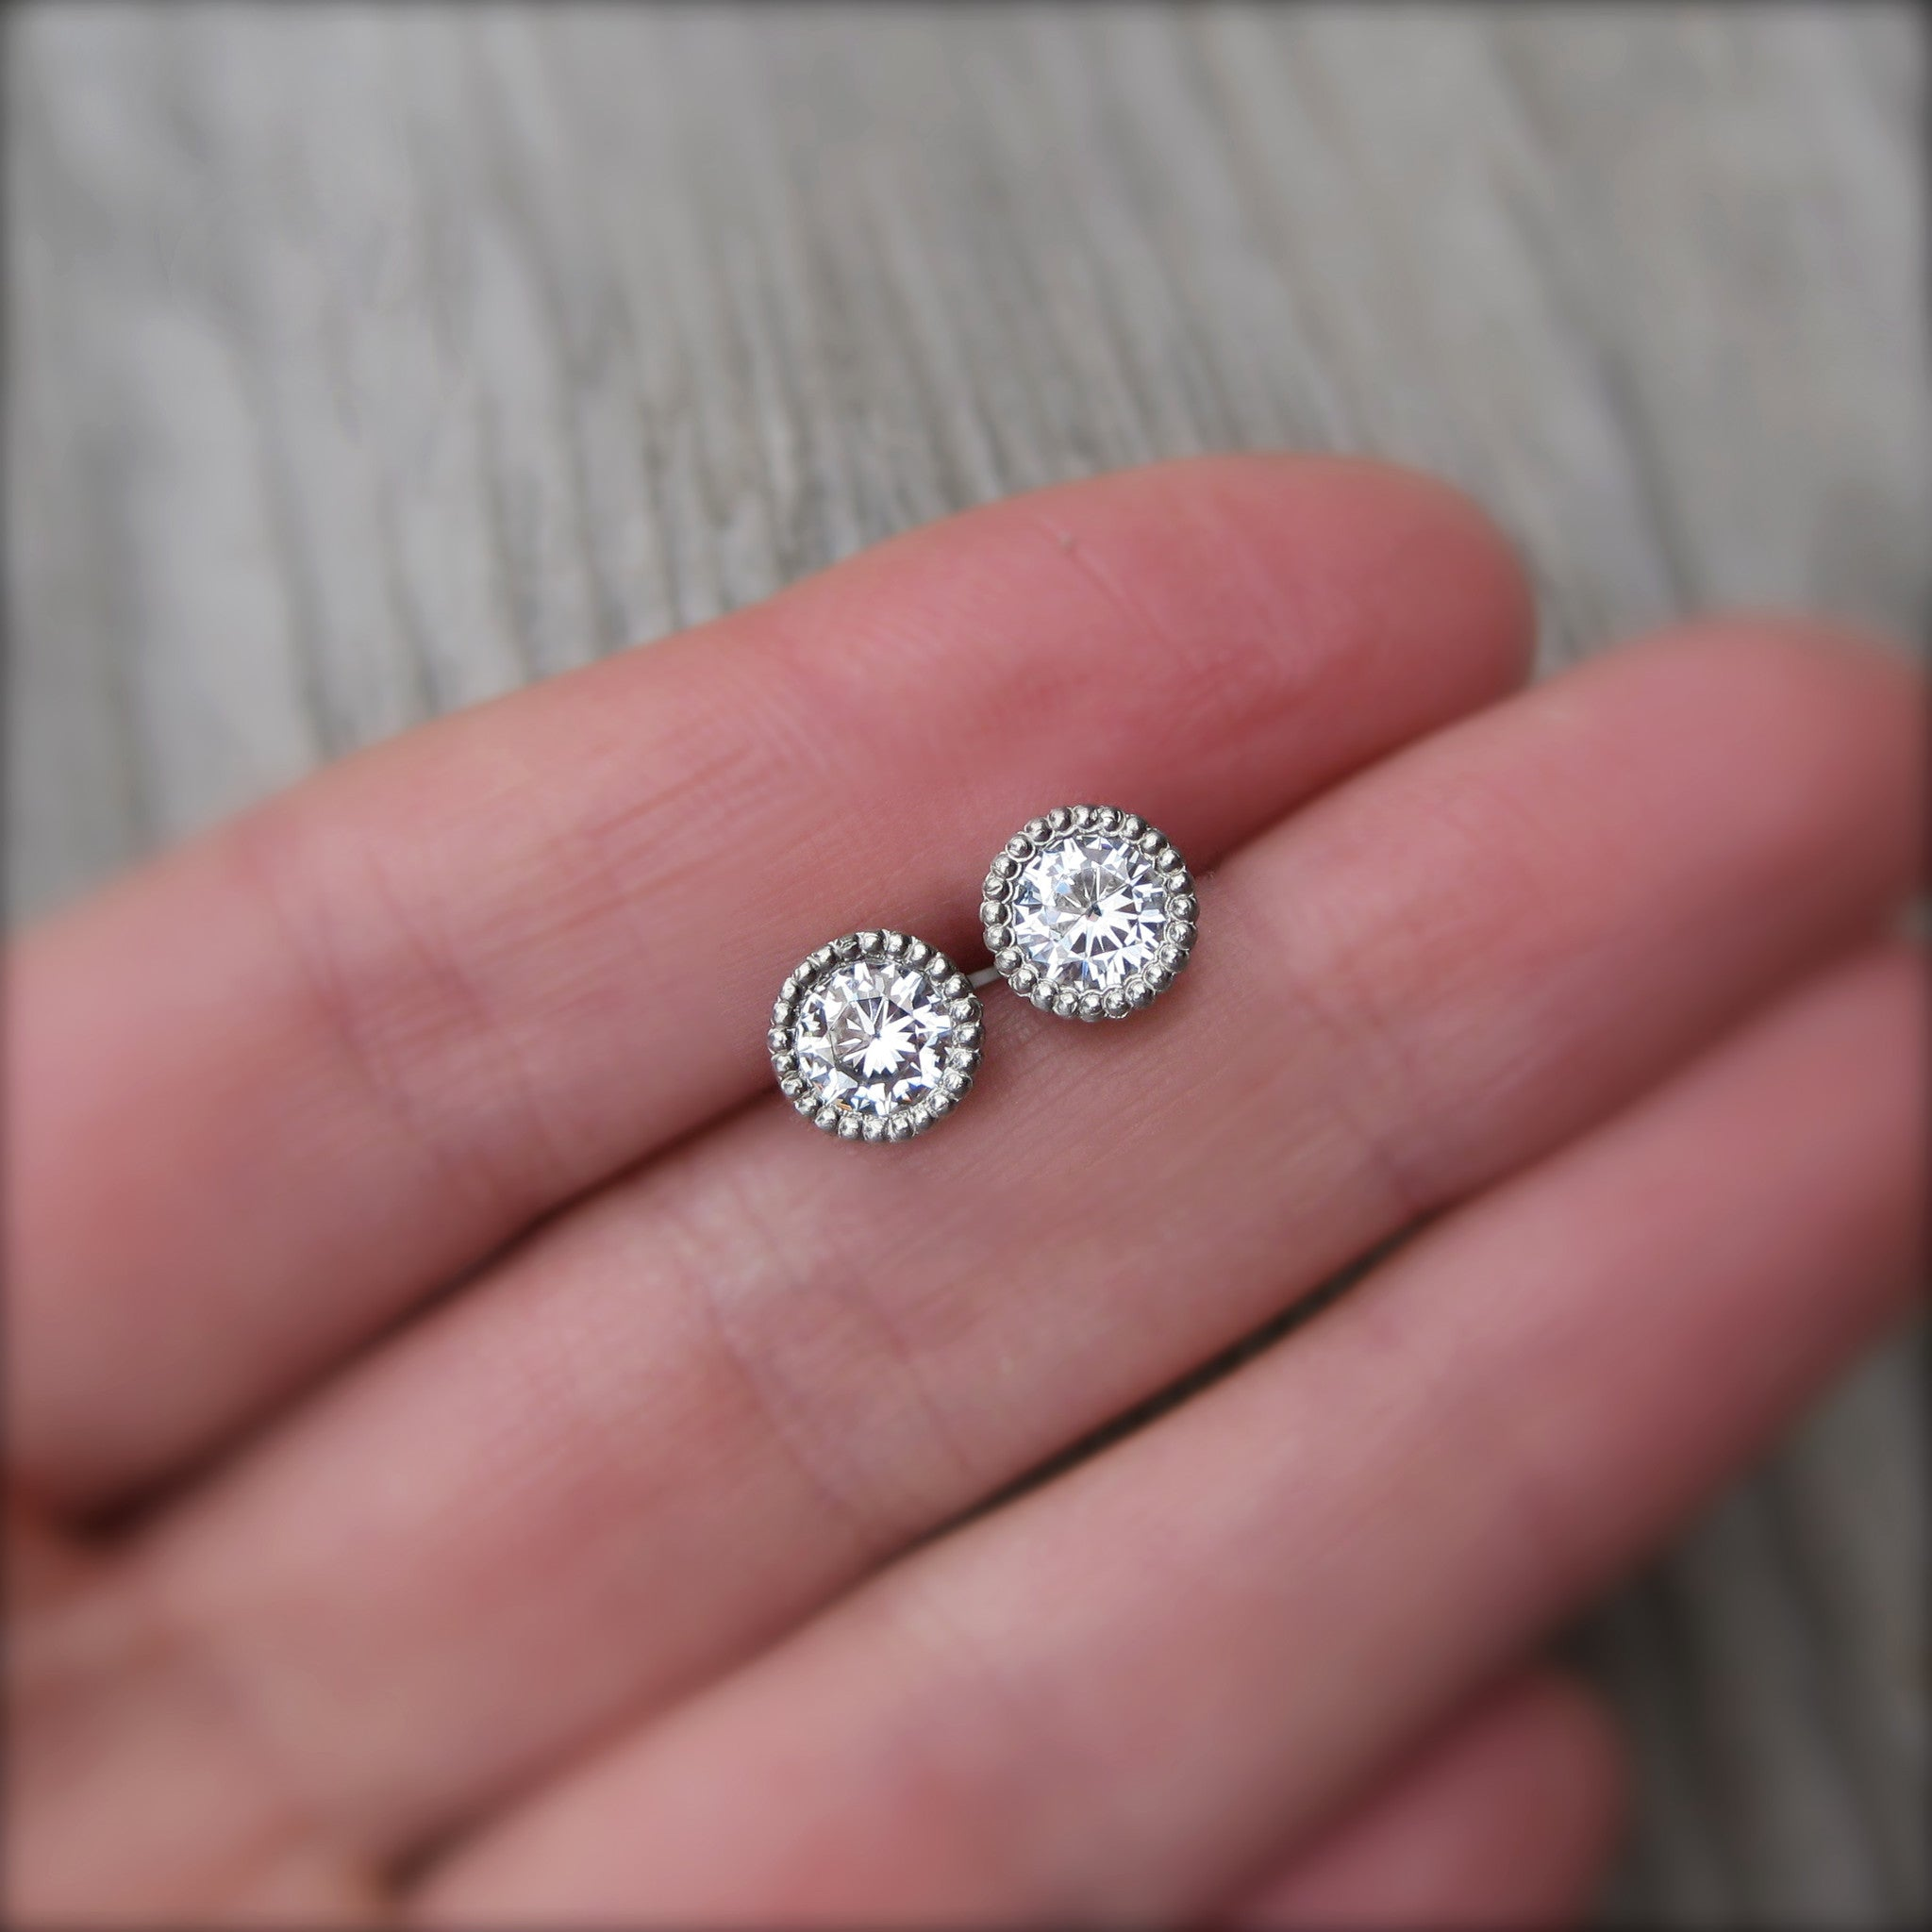 earrings colvard gift valentines poshclassymom stud studs day moissanite and charles diamond ideas